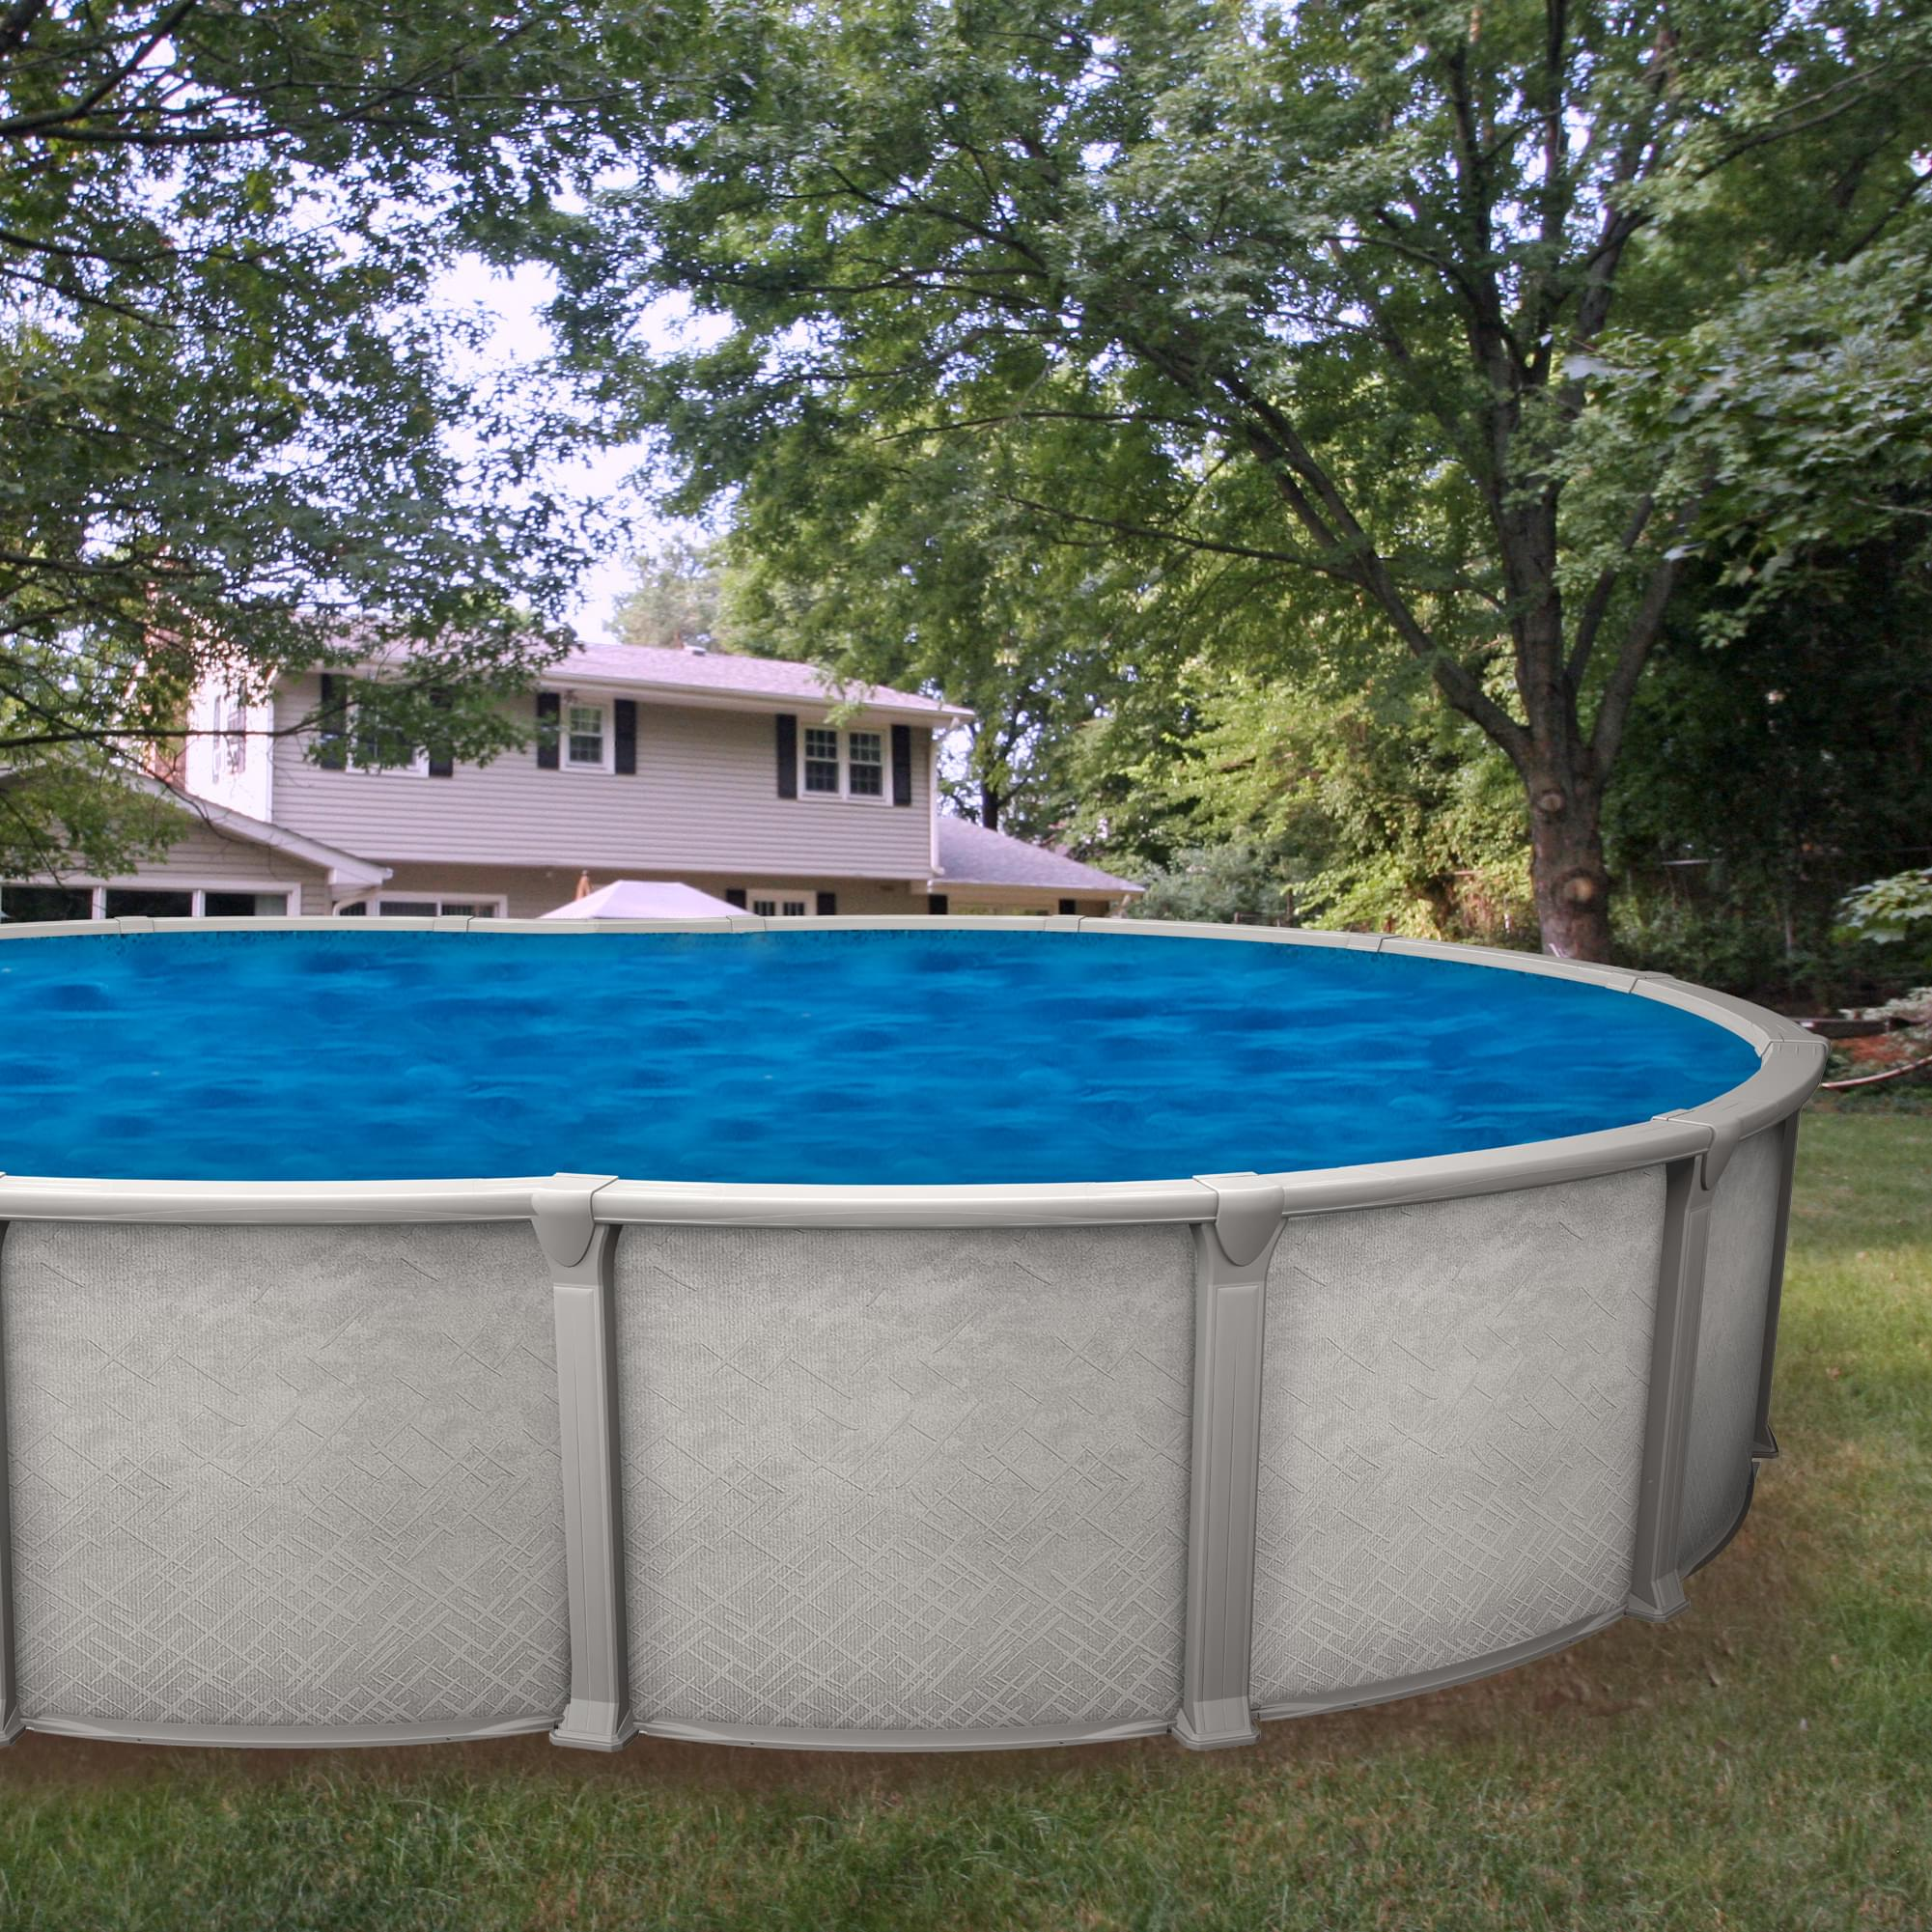 Galaxy 18 x 33 pied ovale piscine ho magasin de piscine for Club piscine fermeture piscine hors terre